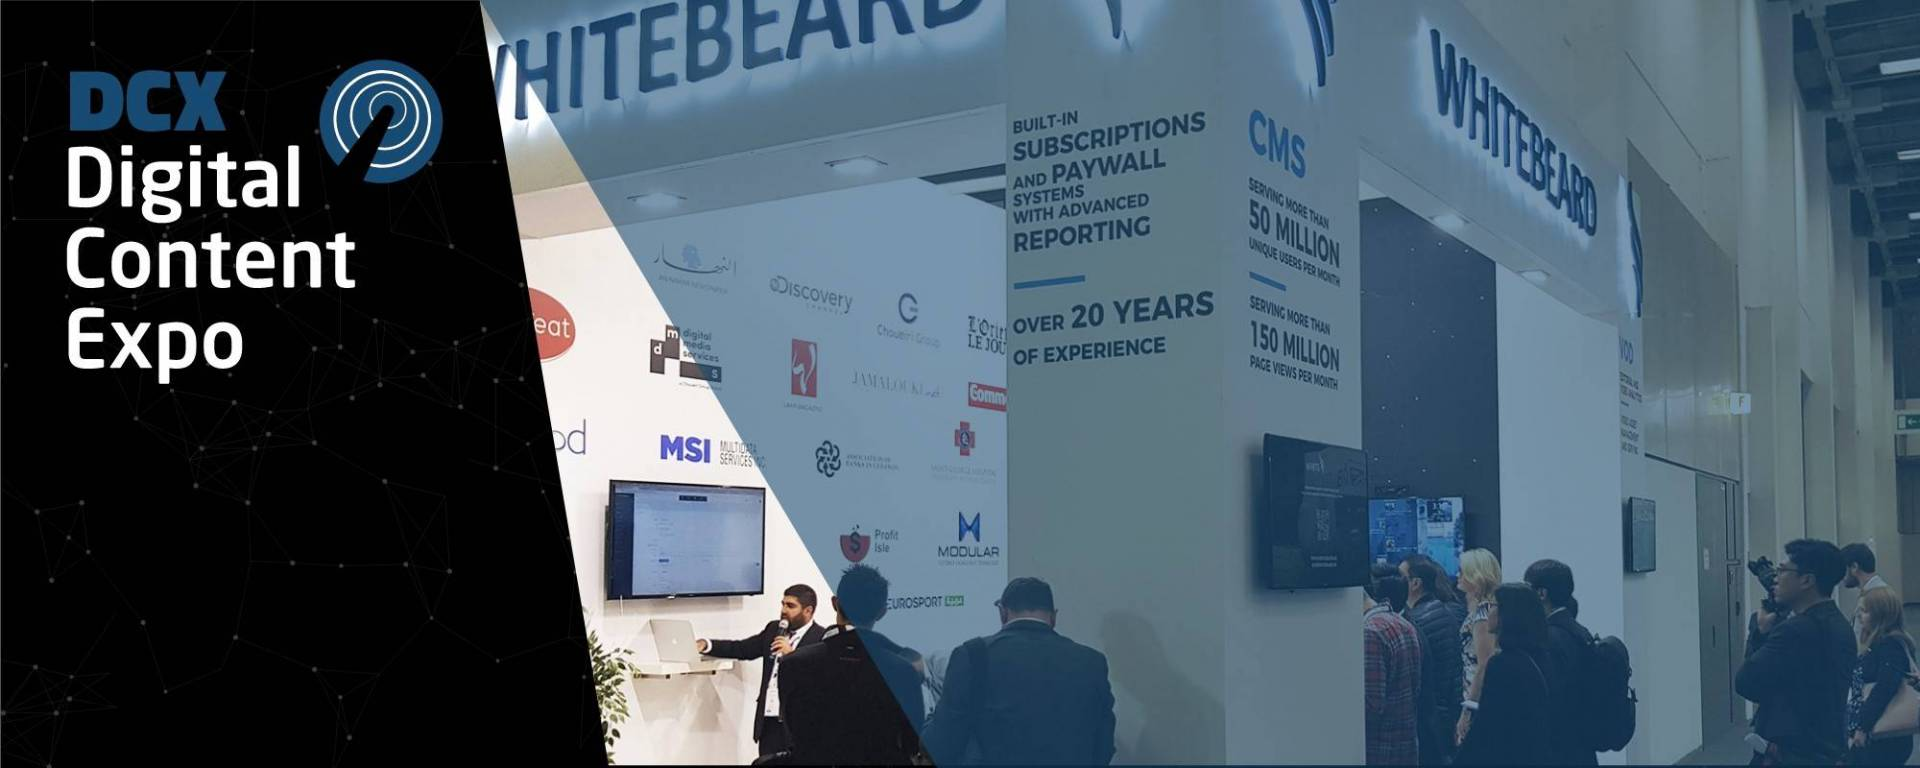 WhiteBeard participates in WAN-IFRA Digital Content Expo 2017